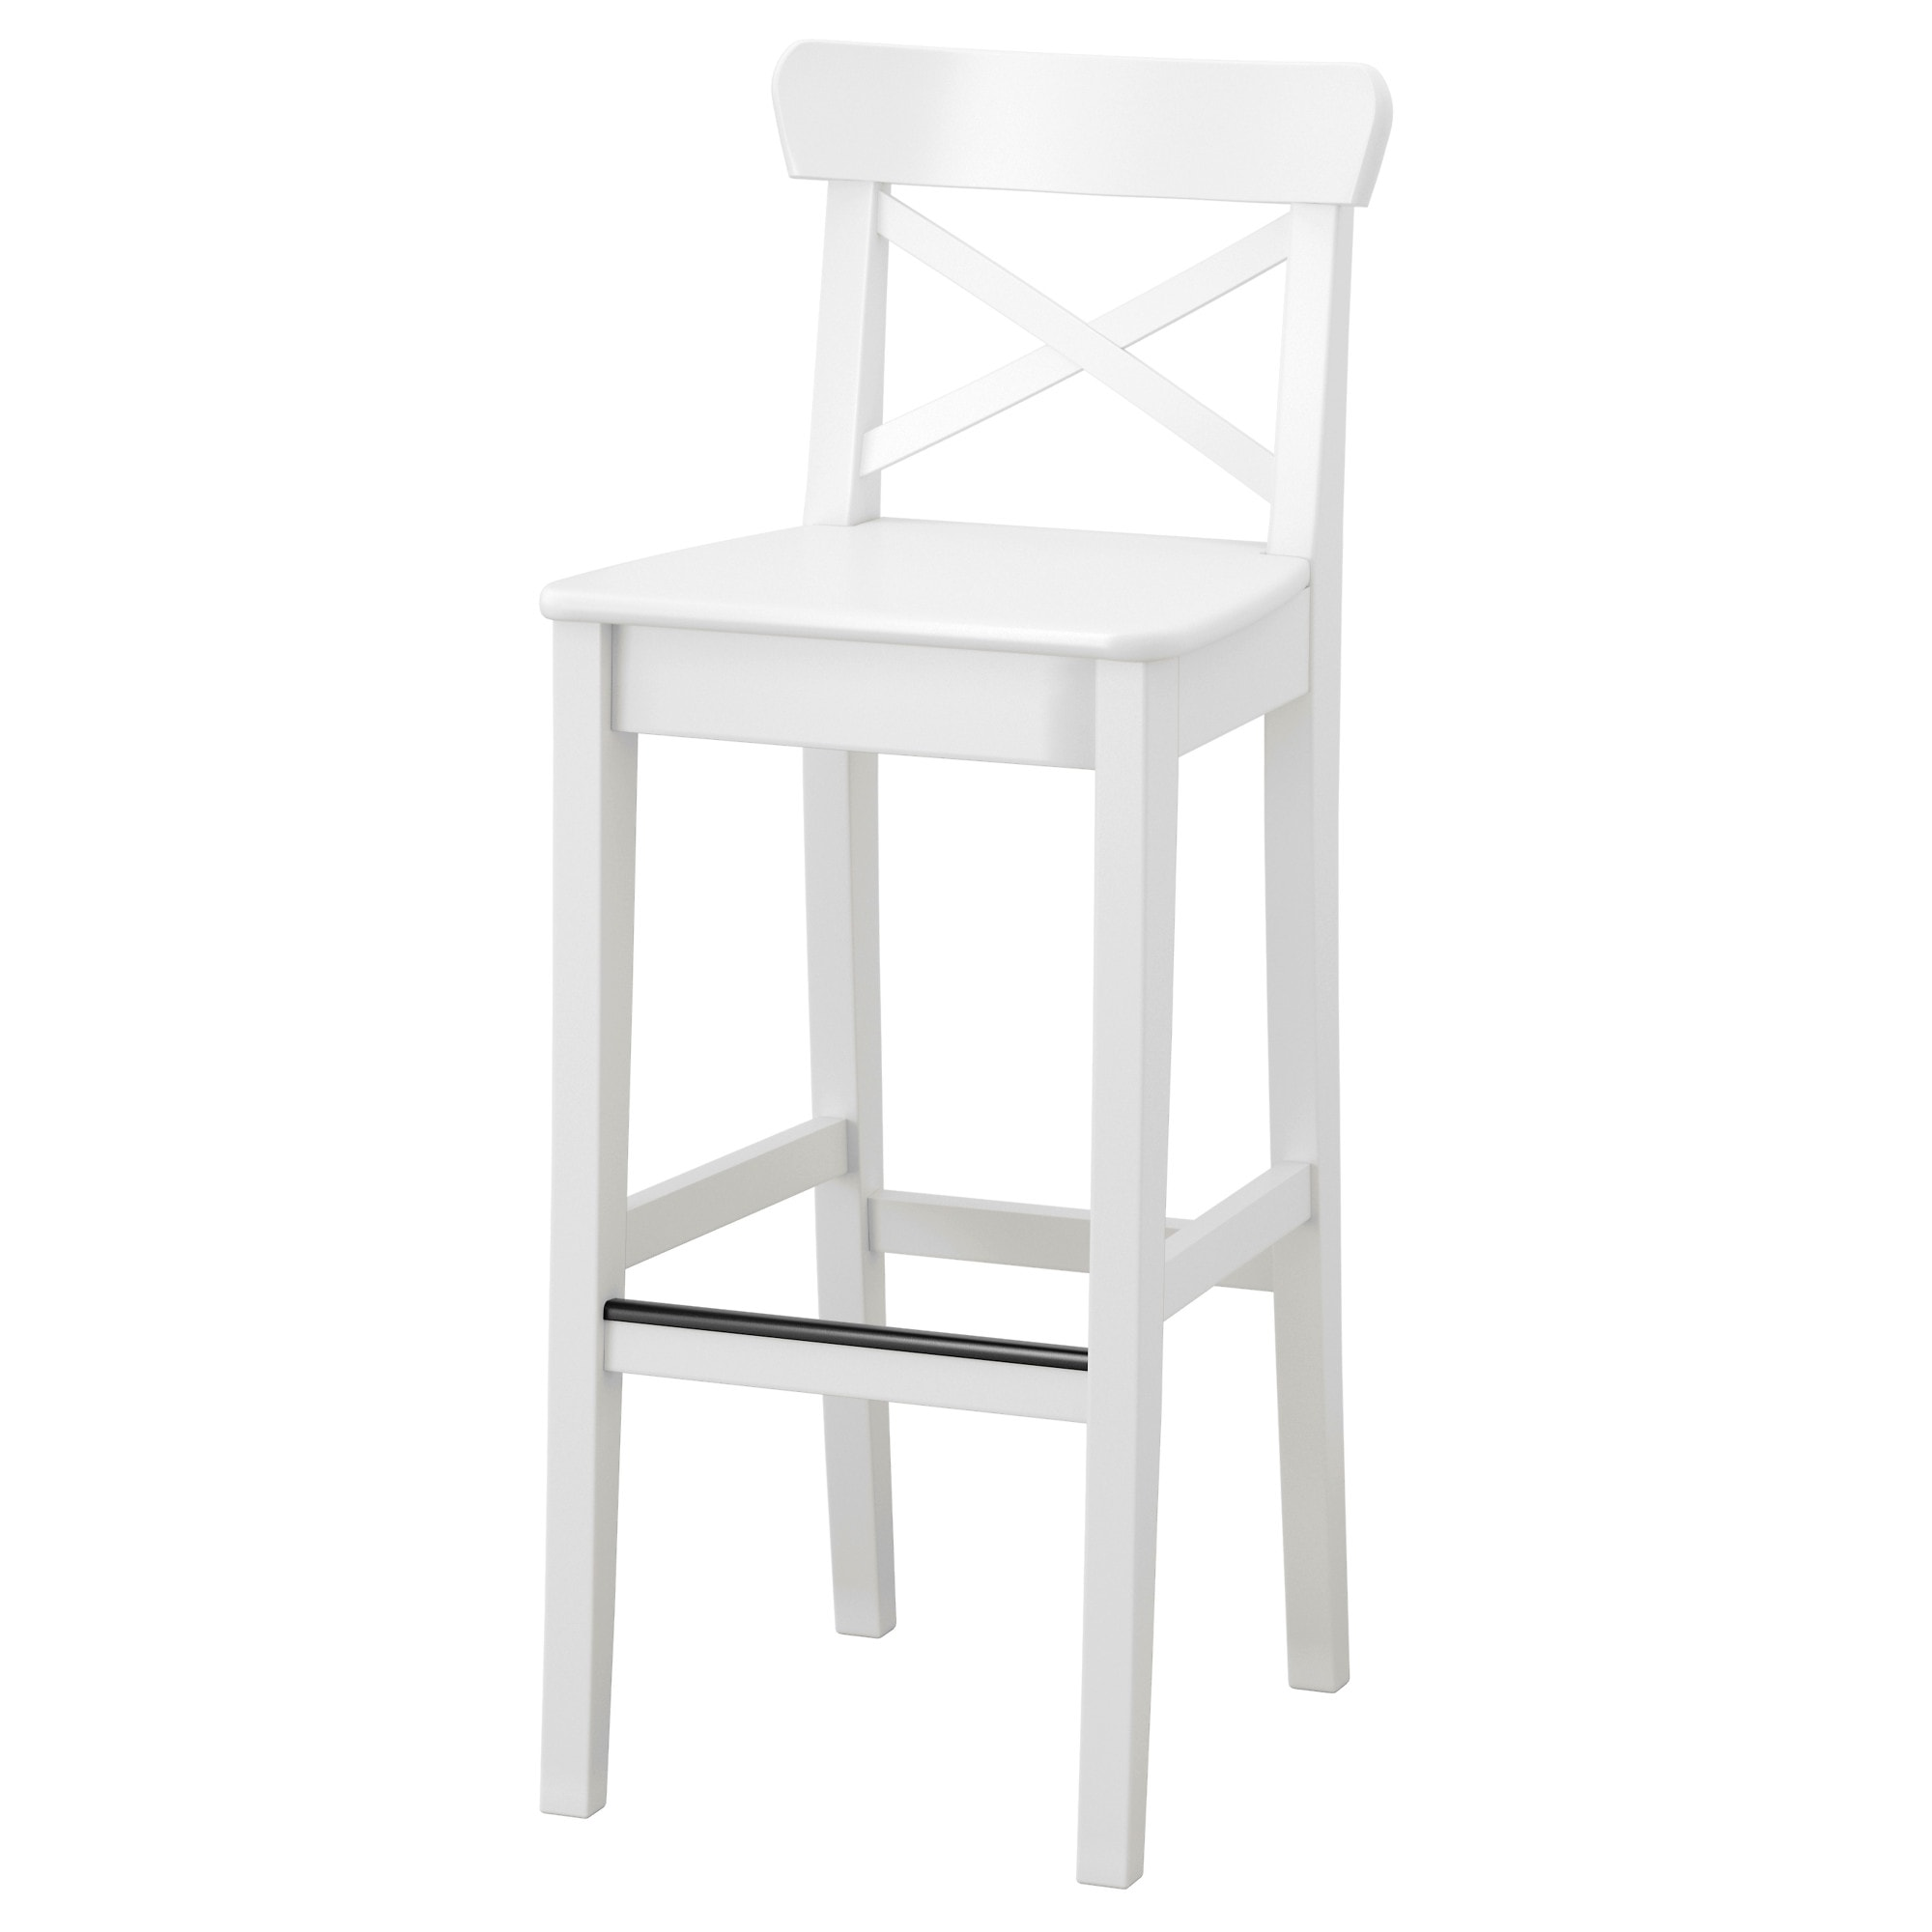 sc 1 st  Ikea & INGOLF Bar stool with backrest - 24 3/4